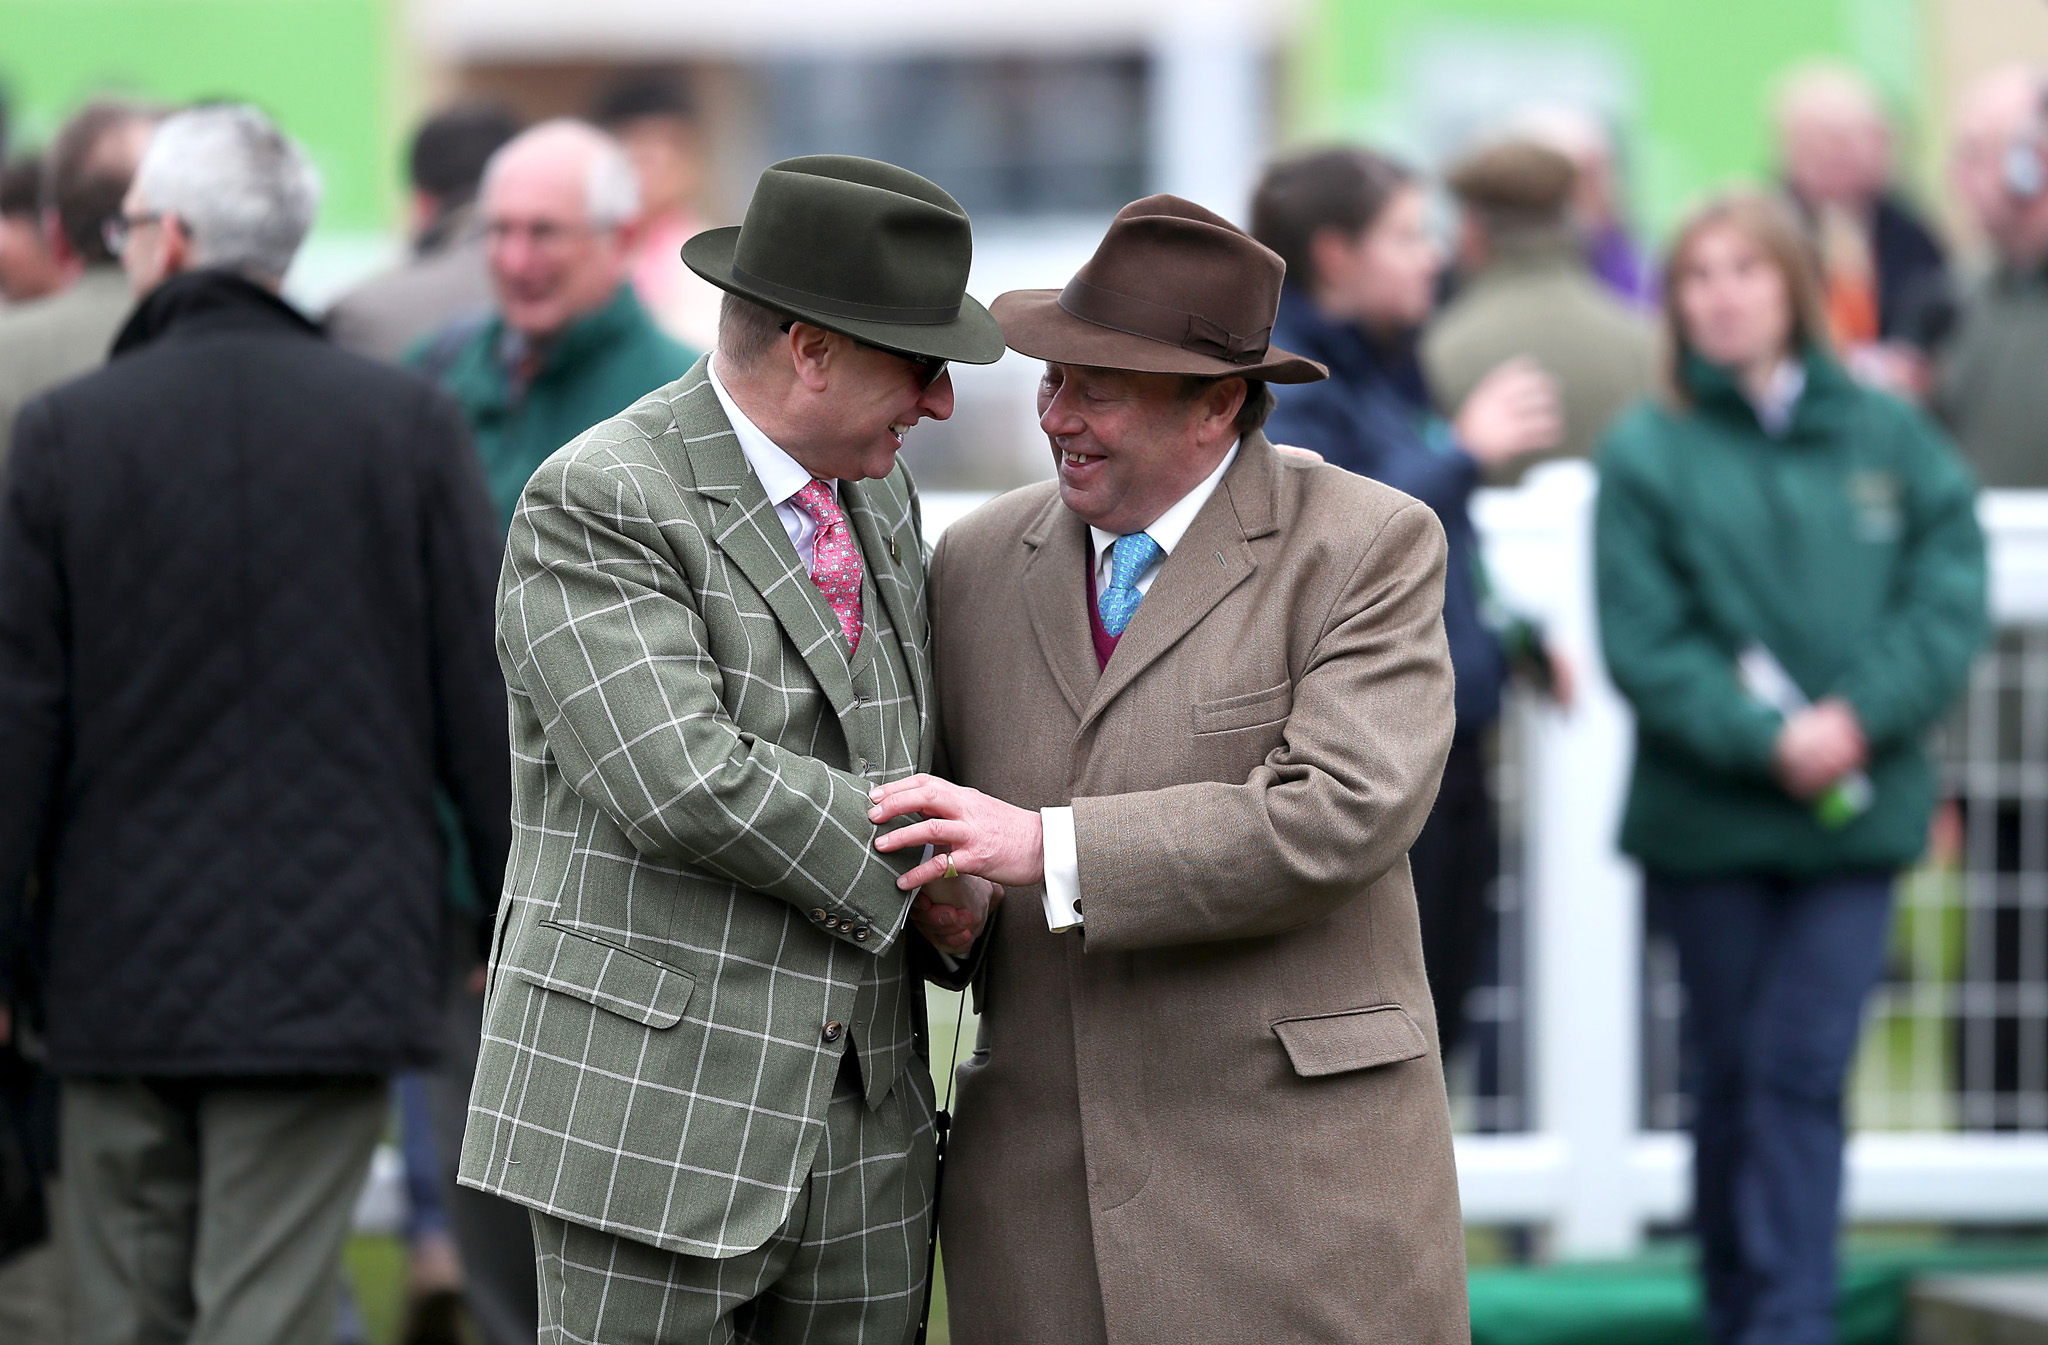 2016 Cheltenham Festival - Champion Day - Cheltenham Racecourse...Rich Ricci congratulates winning trainer Nicky Henderson (right) after Altior wins the Sky Bet Supreme Novices' Hurdle during Champion Day of the 2016 Cheltenham Festival at Cheltenham Racecourse. PRESS ASSOCIATION Photo. Picture date: Tuesday March 15, 2016. See PA story RACING Cheltenham. Photo credit should read: David Davies/PA Wire. RESTRICTIONS: Editorial Use only, commercial use is subject to prior permission from The Jockey Club/Cheltenham Racecourse. Call +44 (0)1158 447447 for further information.